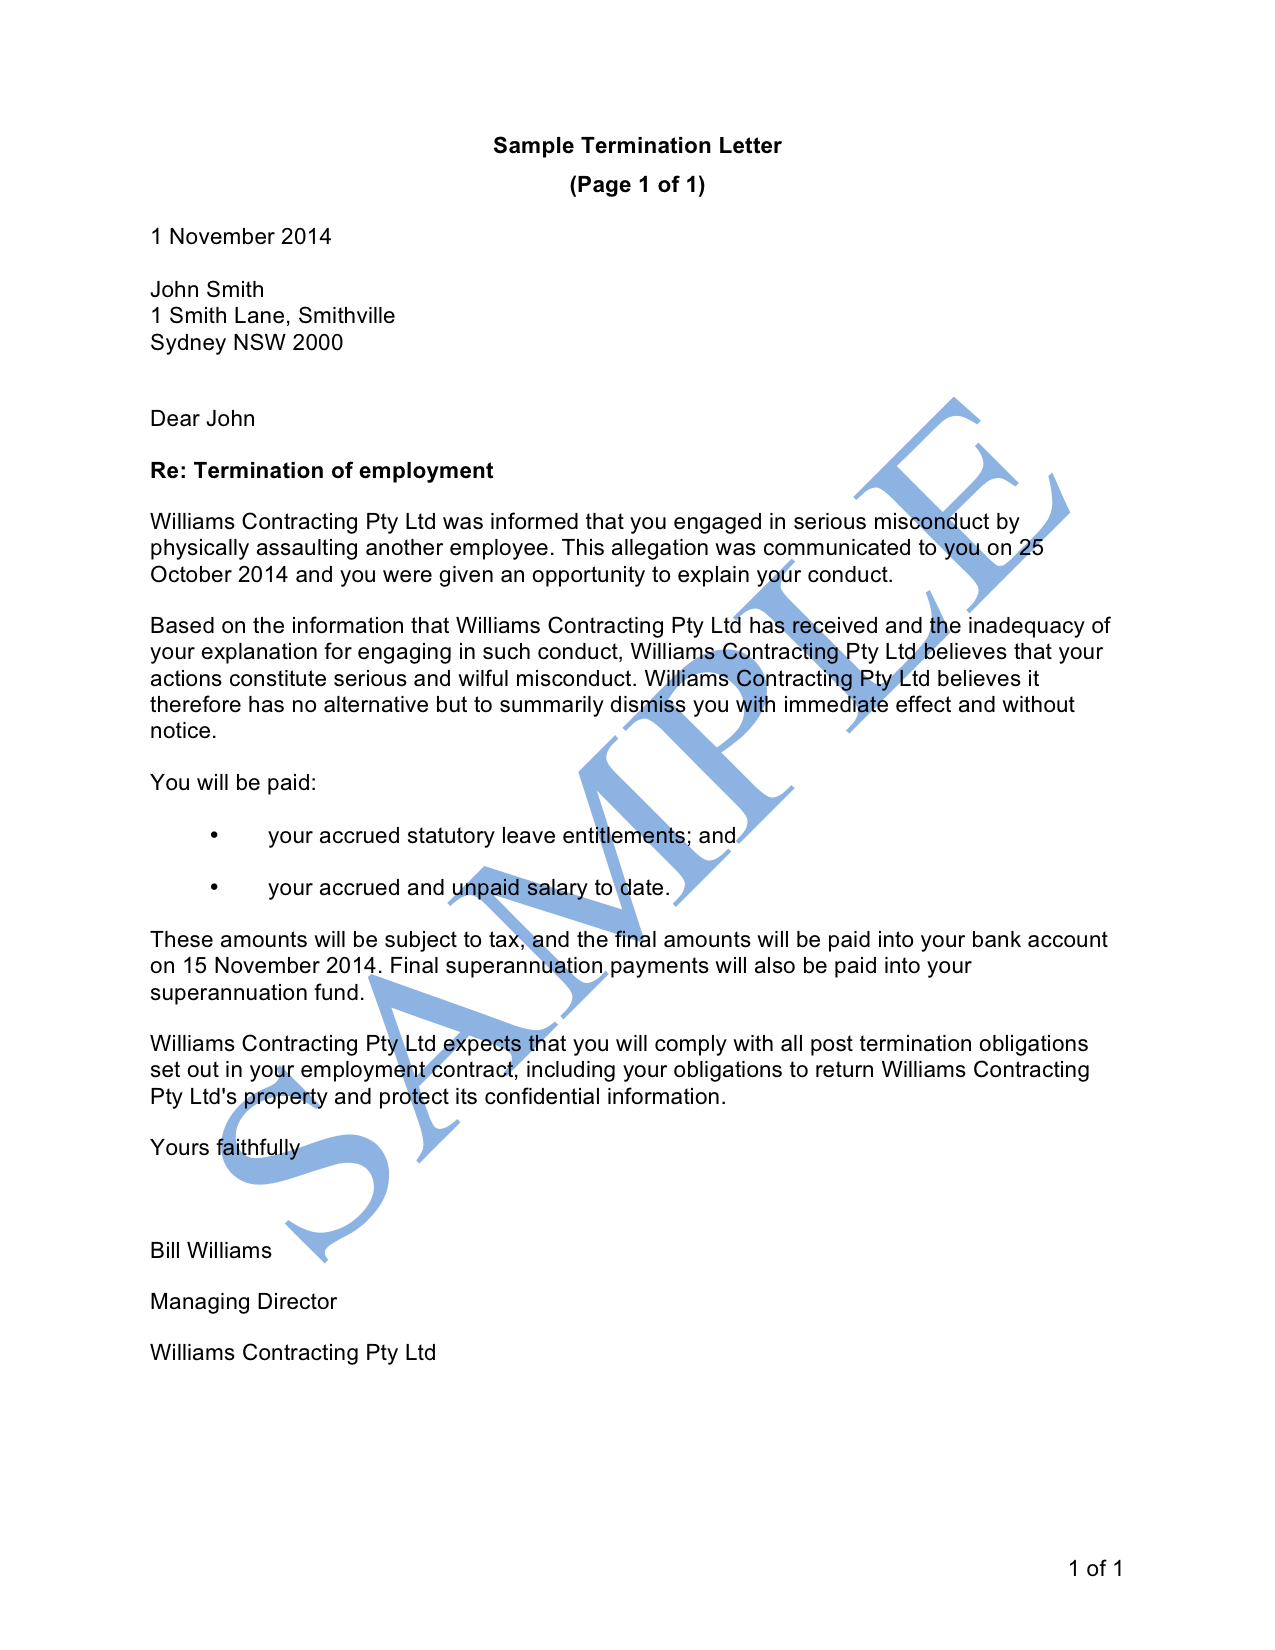 Employee Termination Letter Templates from lp-public-images.s3-ap-southeast-2.amazonaws.com